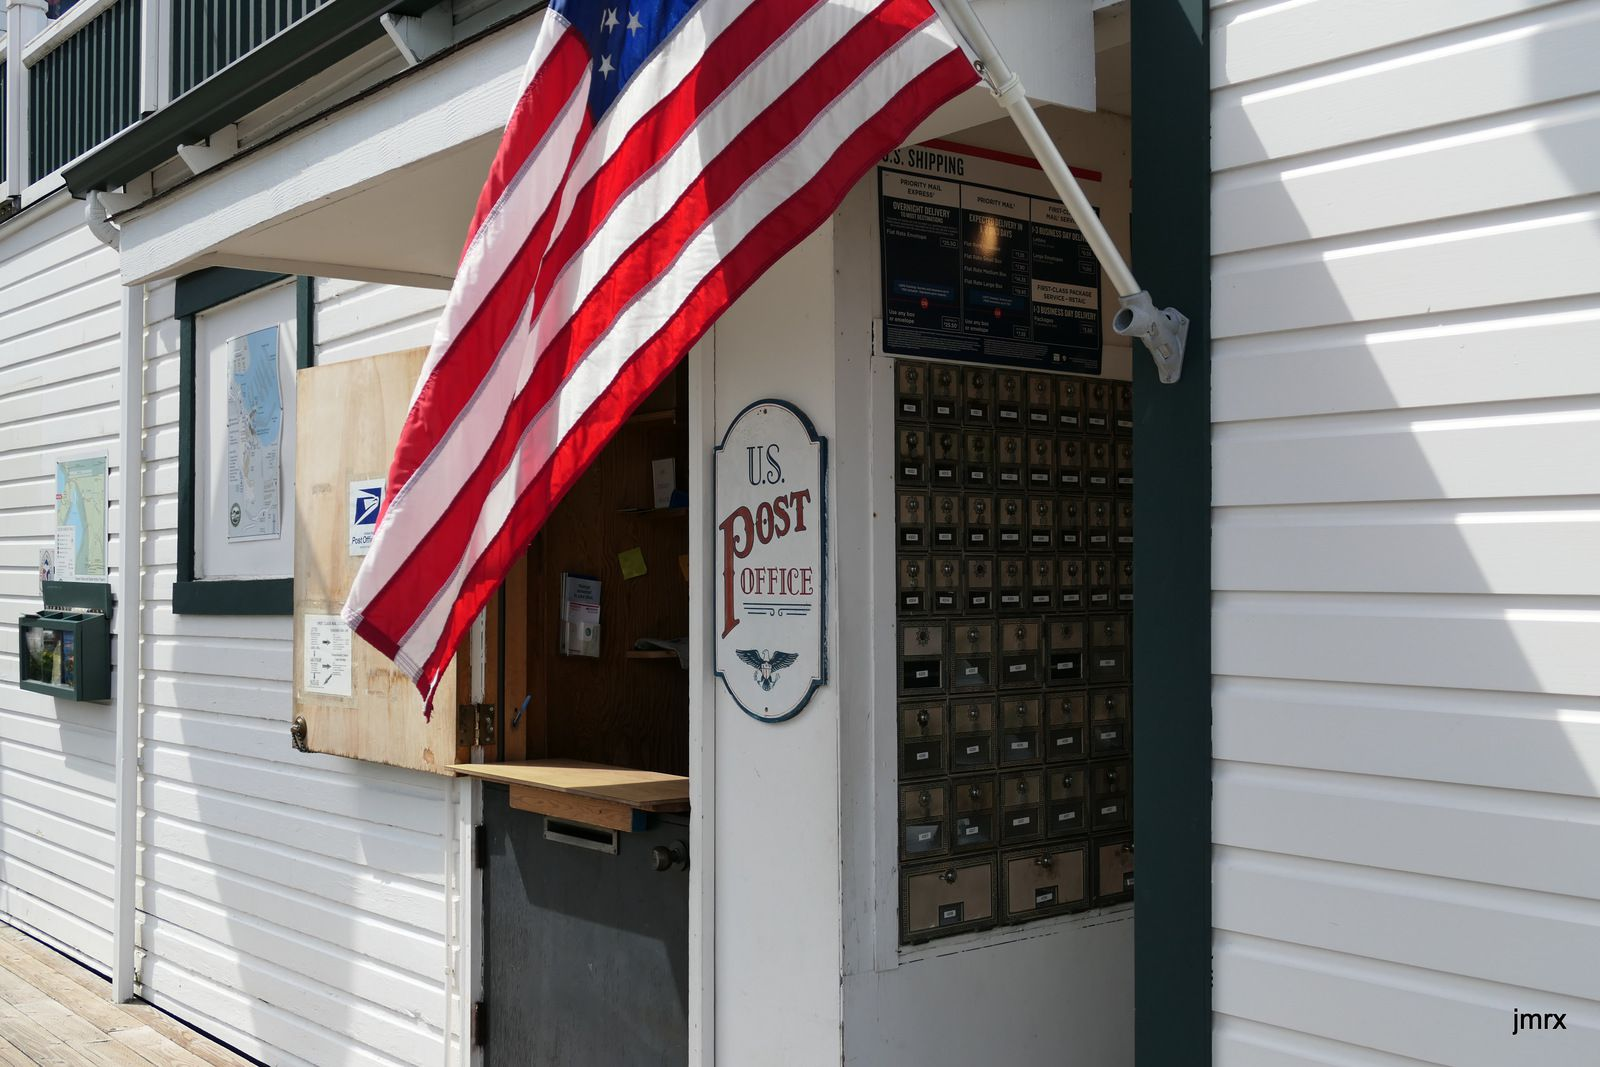 US Post Office.